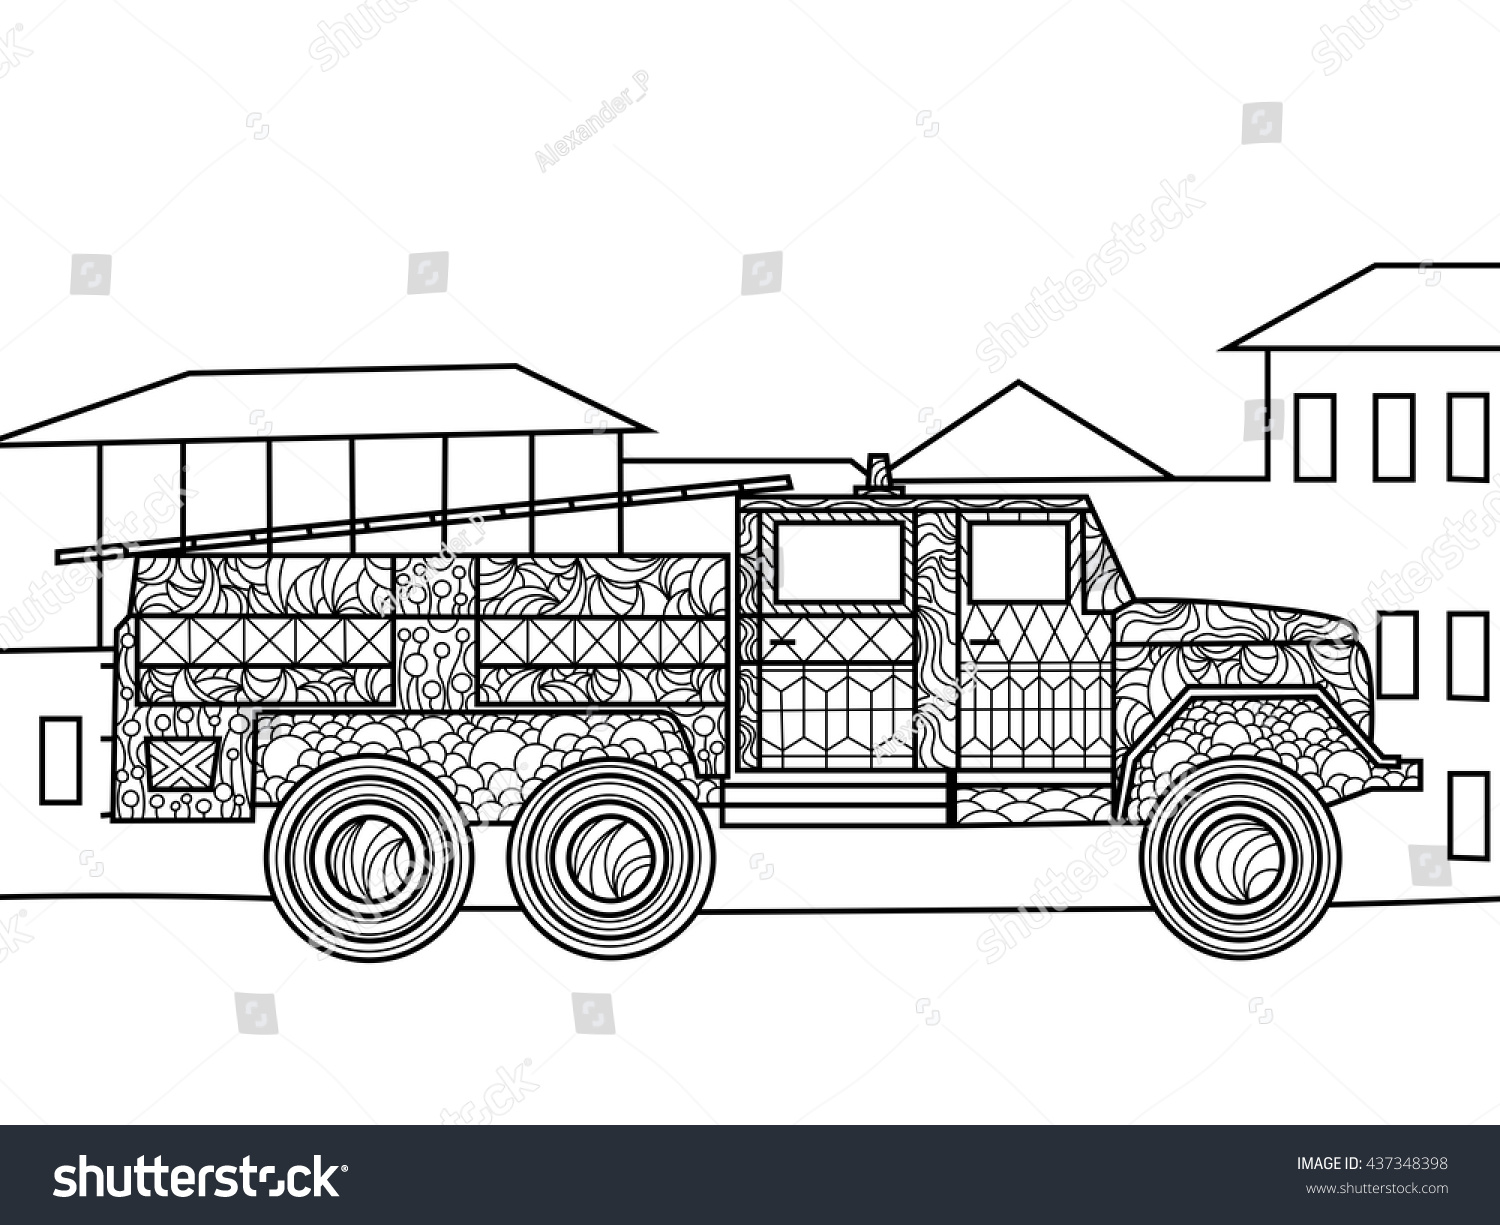 Garbage truck coloring book pages -  Coloring Page Garbage Trucks Free Download